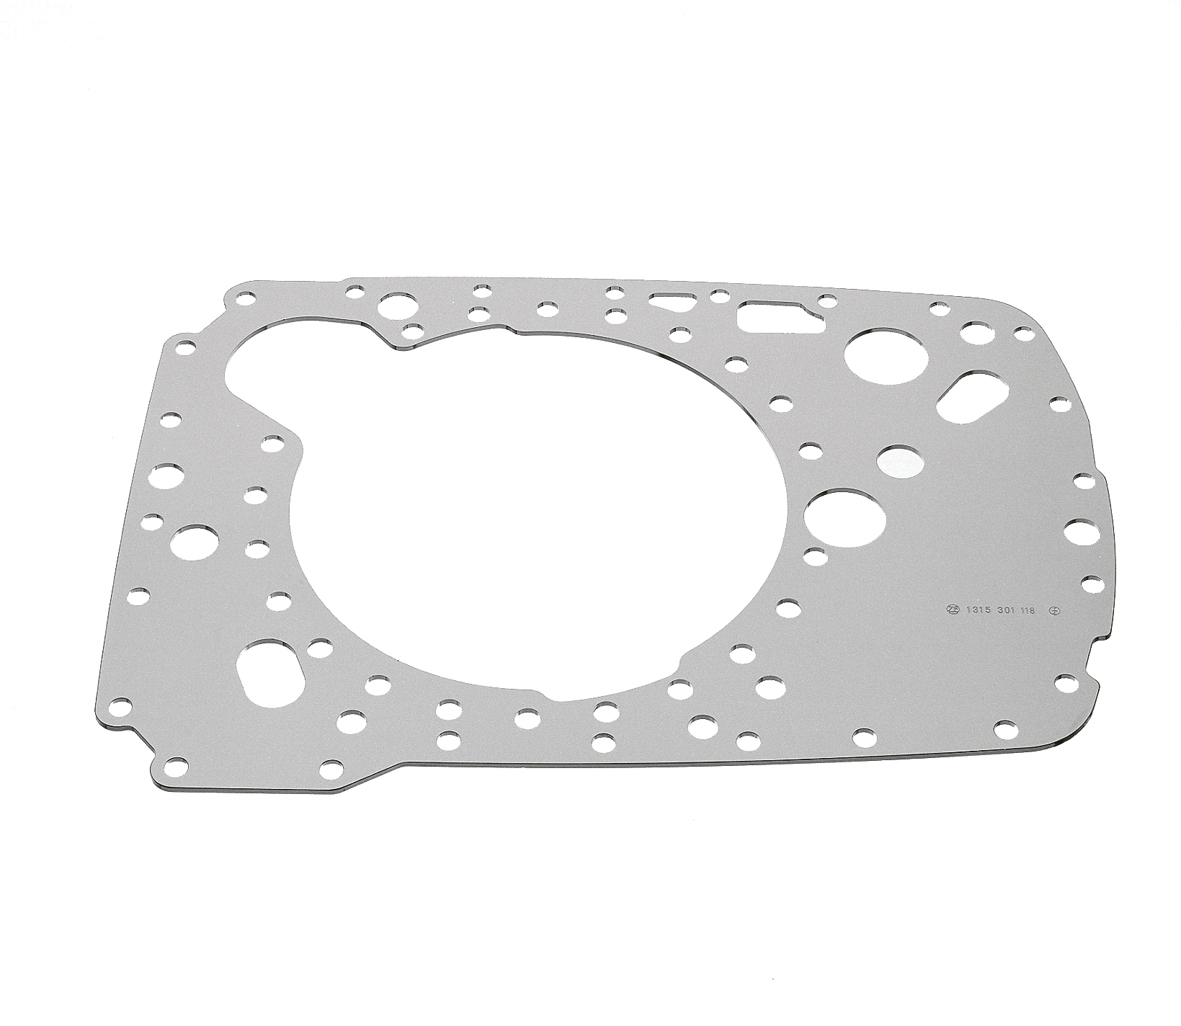 Intermediate plate ST2 K50